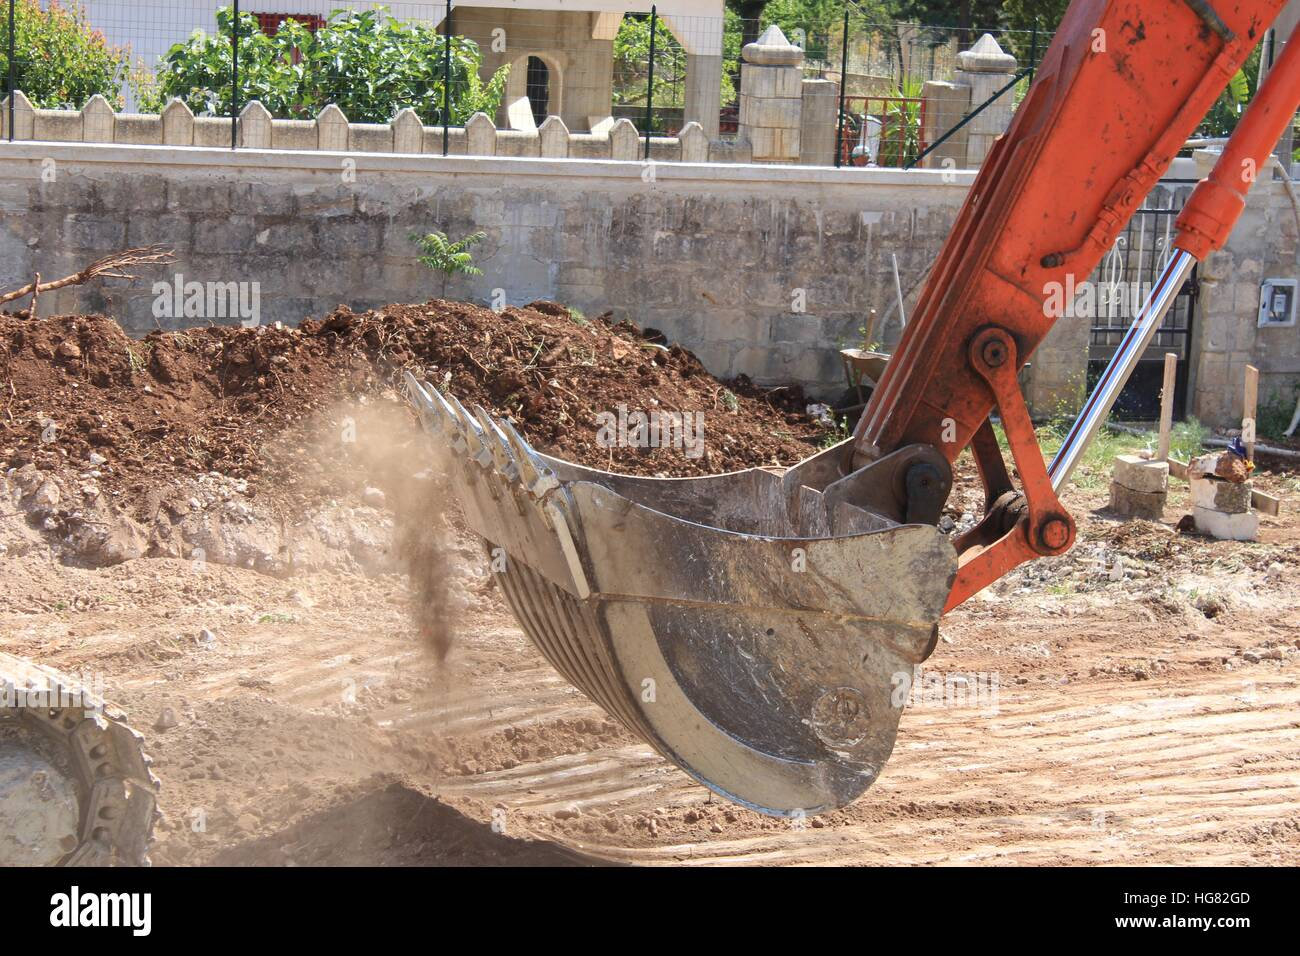 The bucket of a back hoe machine smooths dry earth into place. - Stock Image